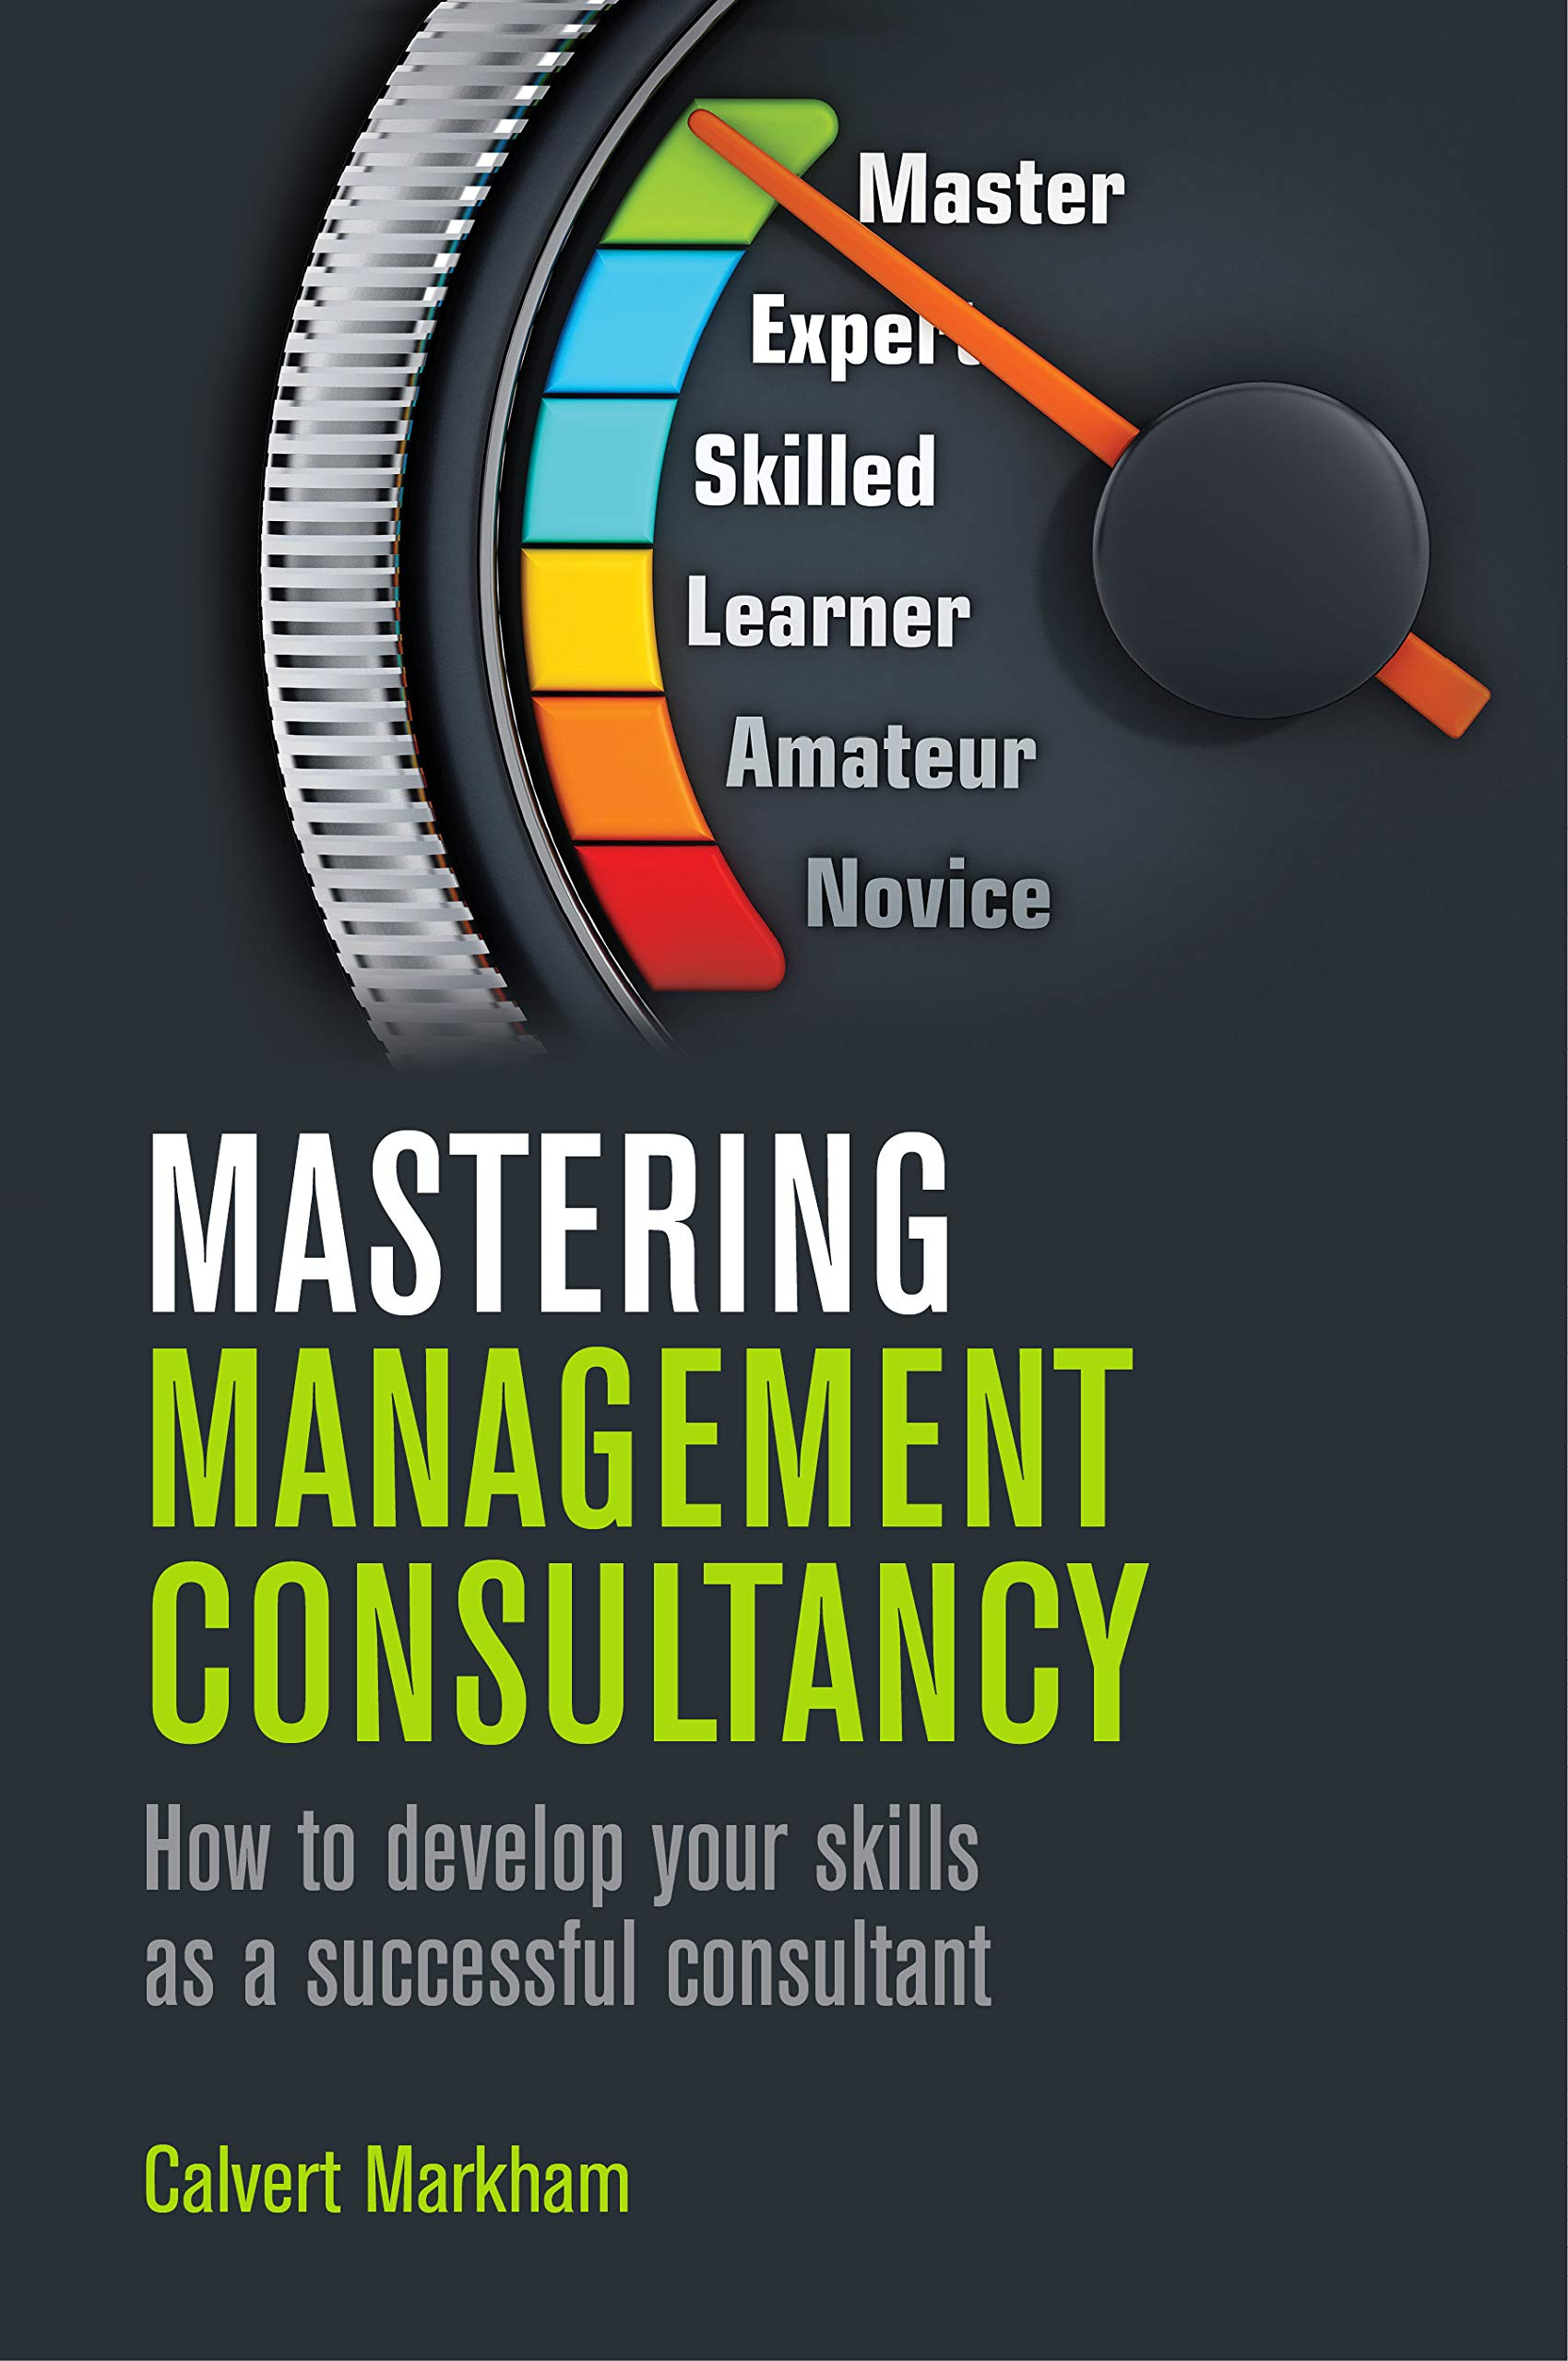 Mastering Management Consultancy: How to Develop Your Skills as a Successful Consultant